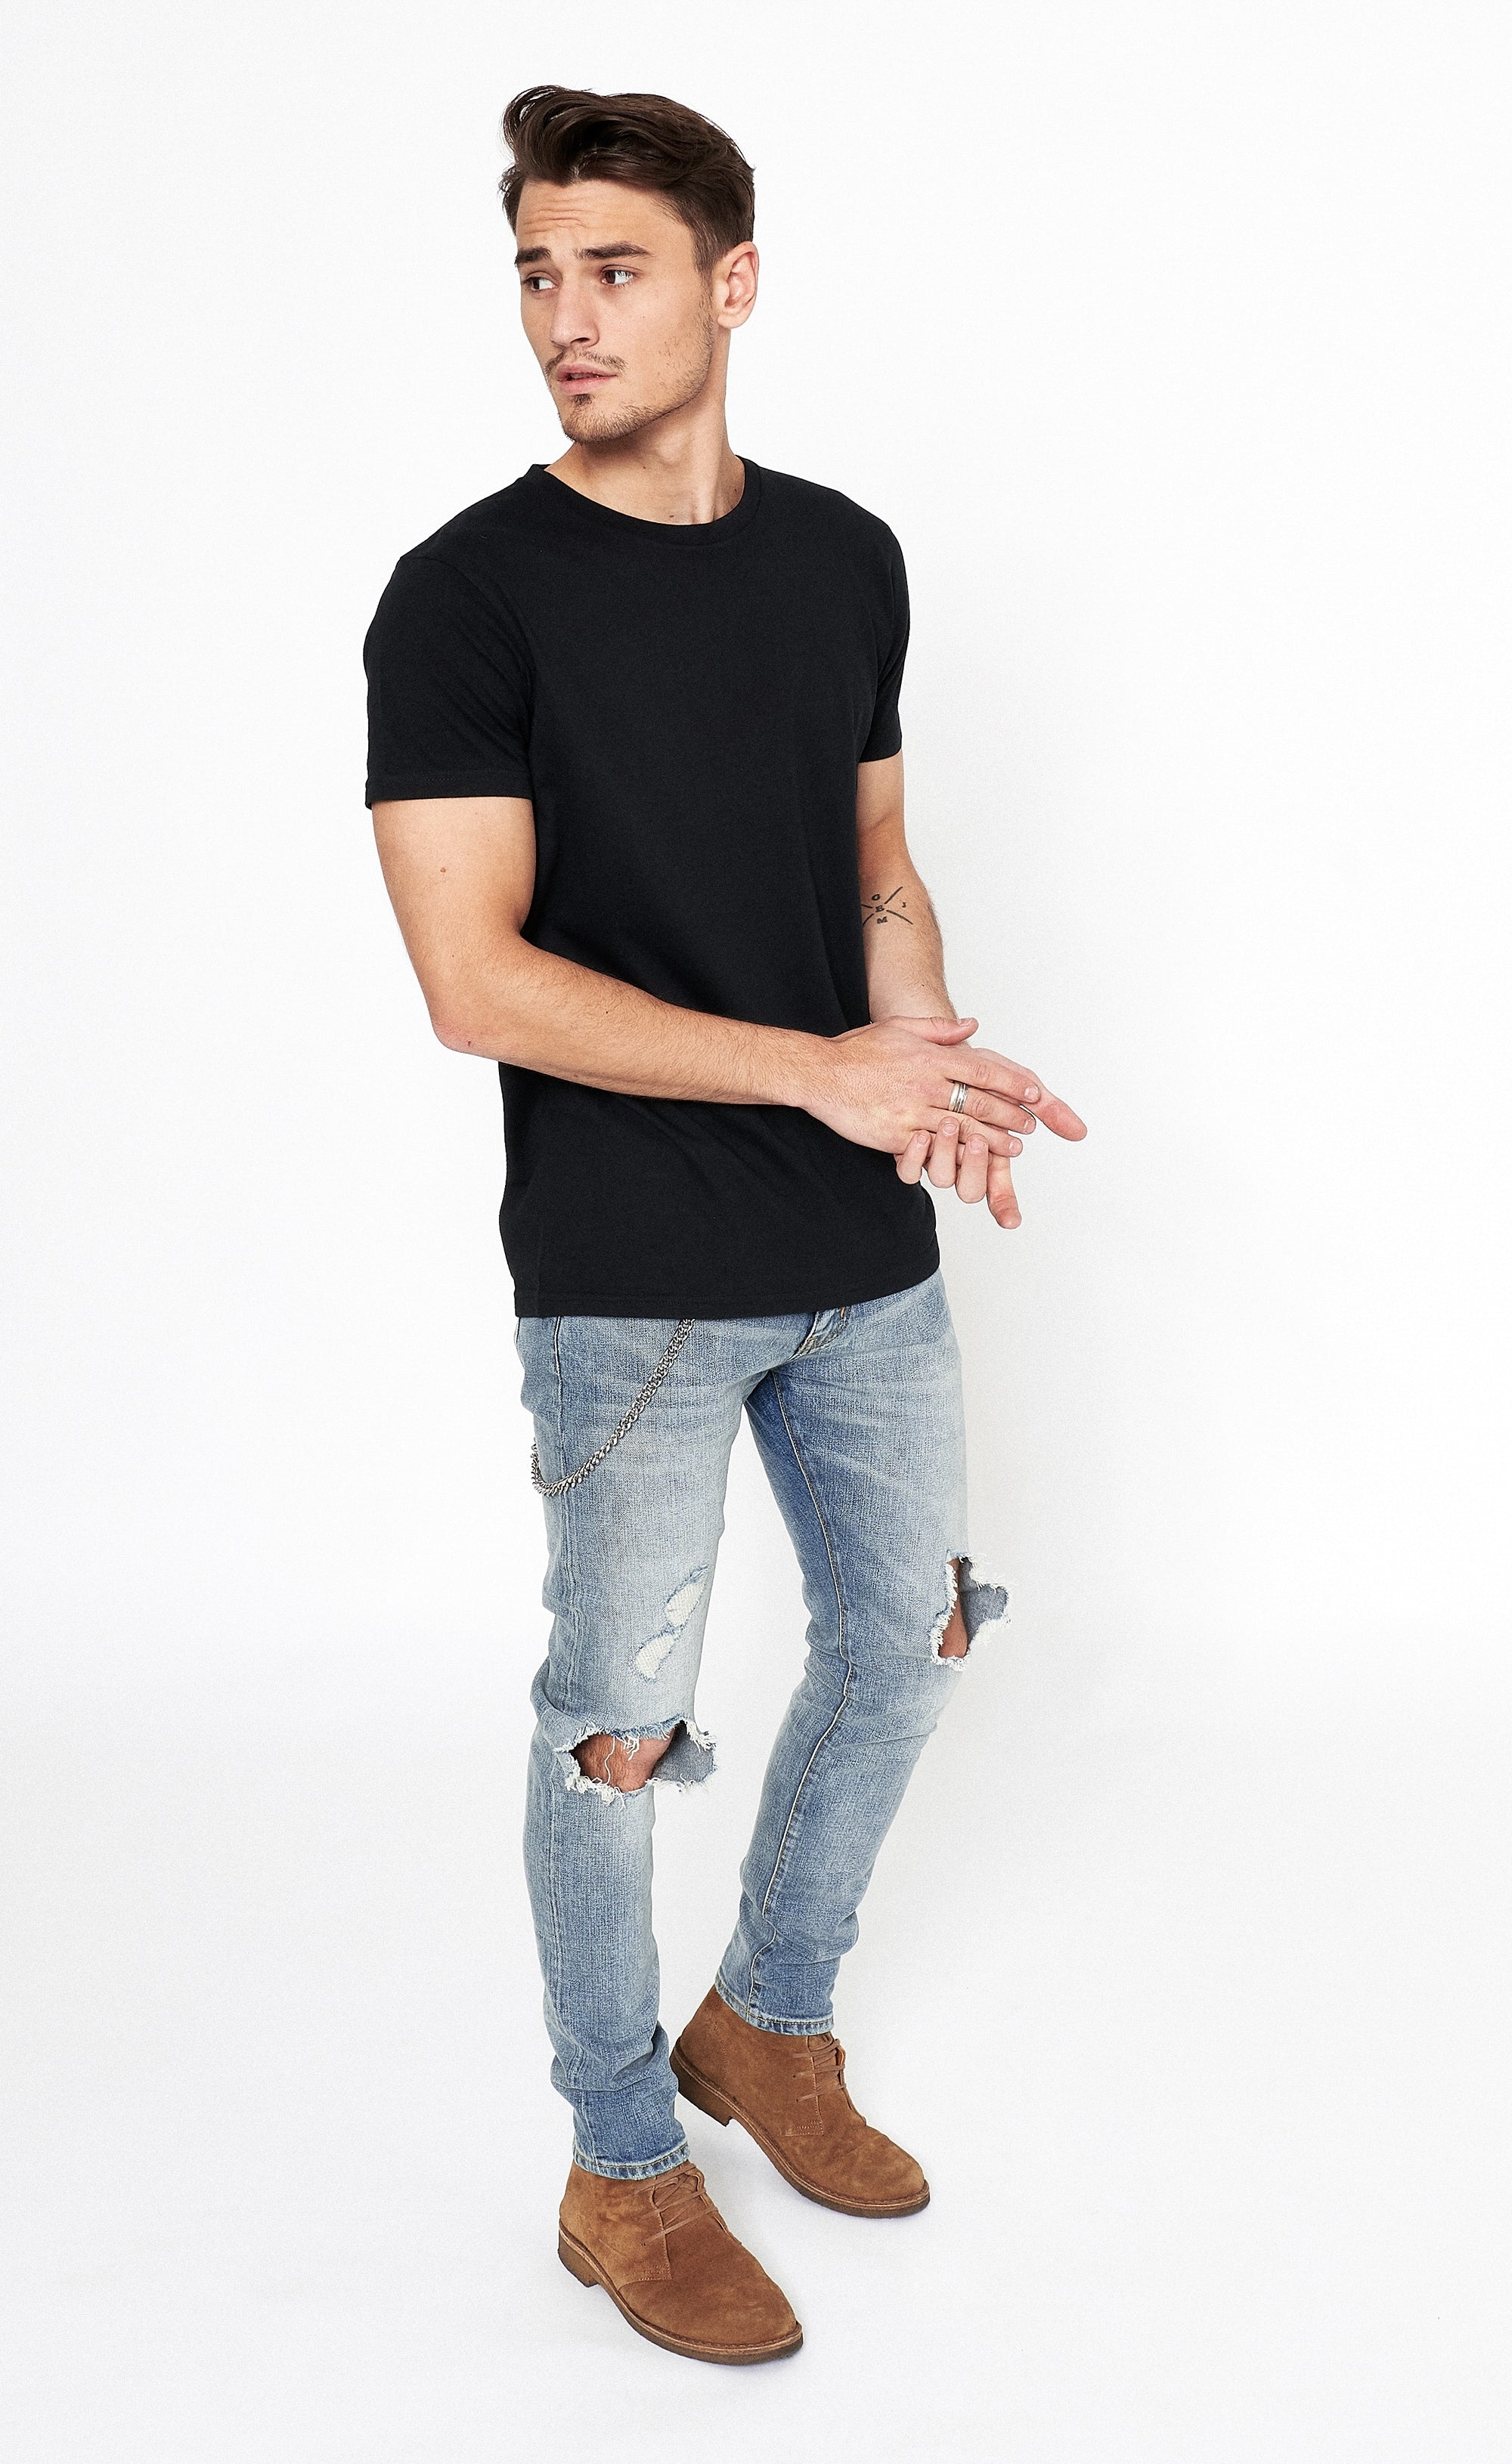 DESTROYED SKINNY JEANS - BLUE - Forage-Clothing